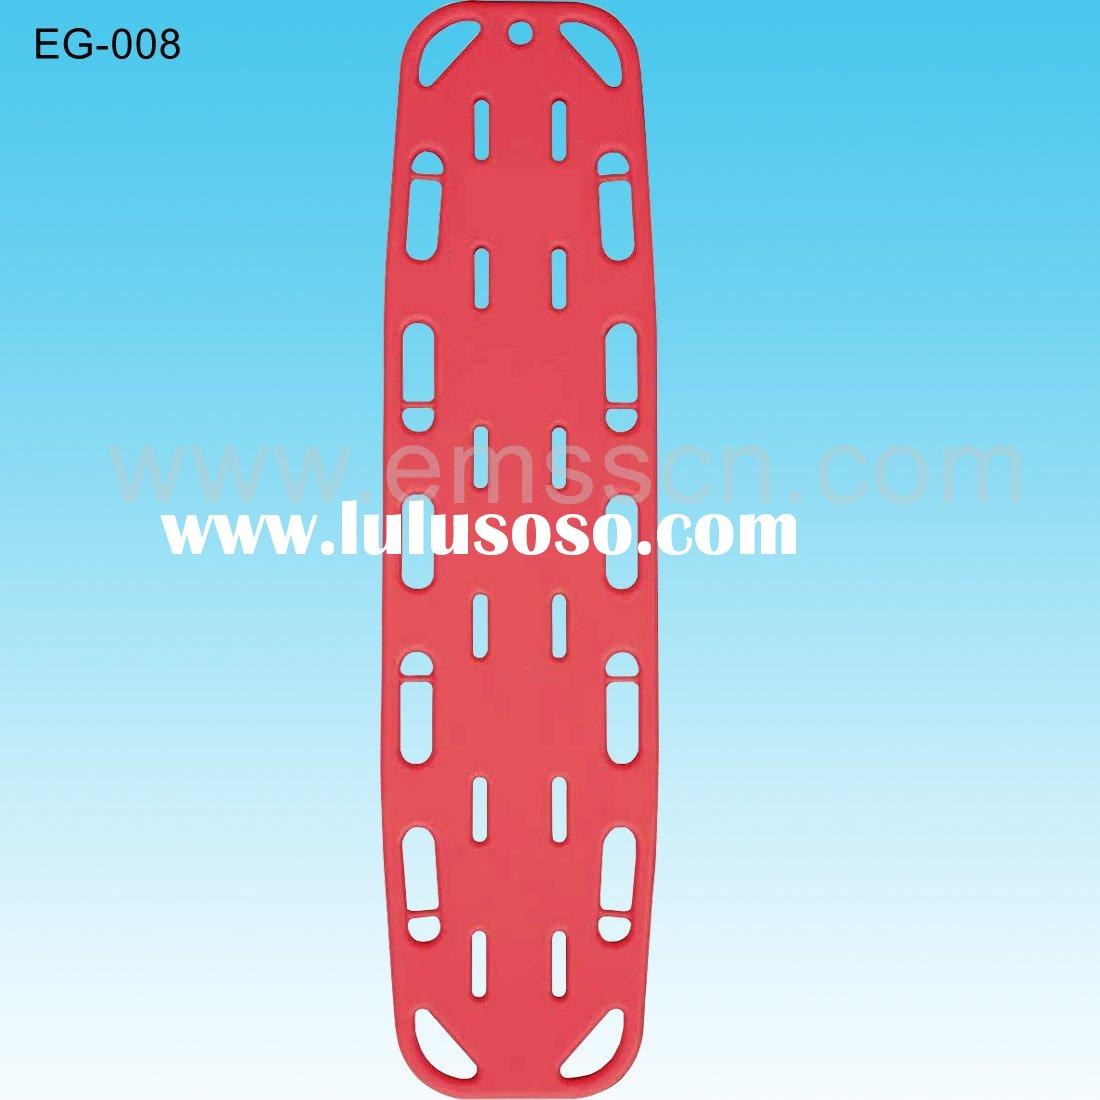 Spinal Board for Pediatric-Medical equipment